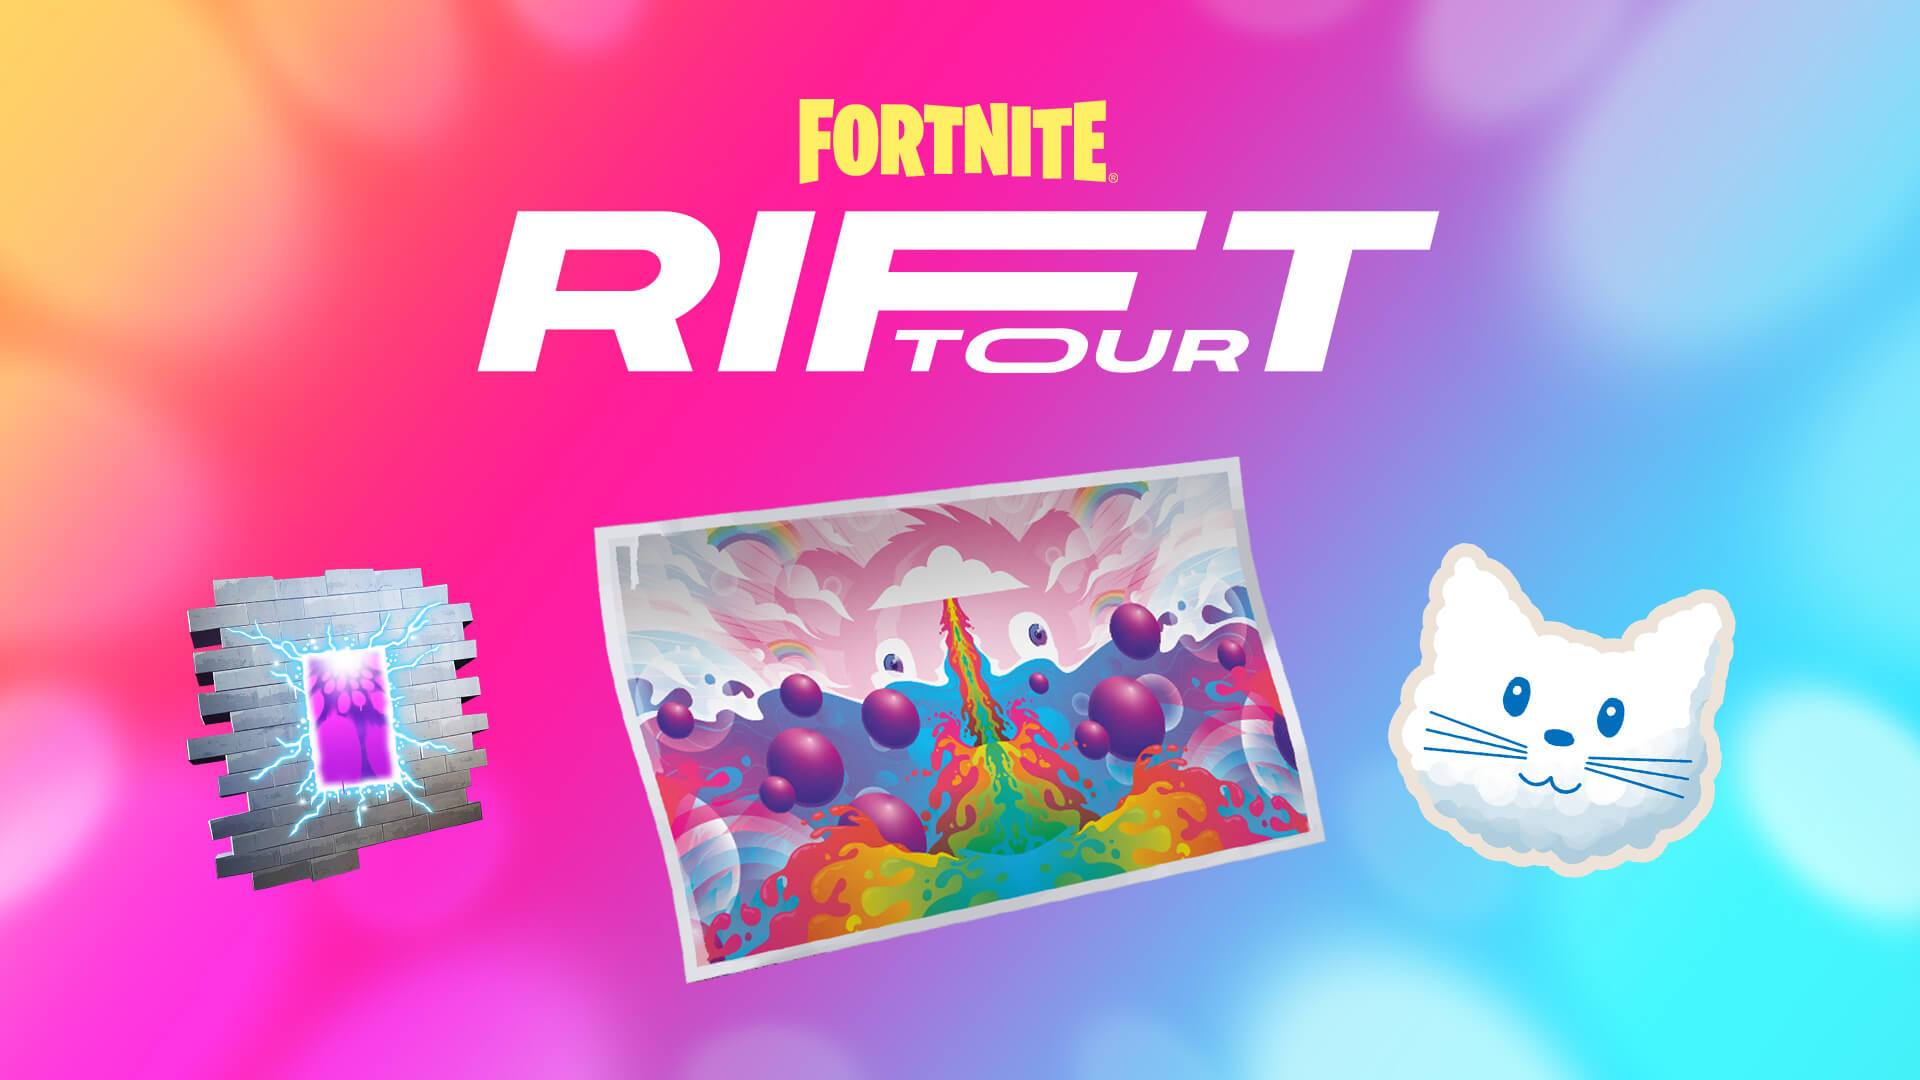 Ariana Grande Team Up With Epic Games For Rift Tour 2021: Rewards for the game